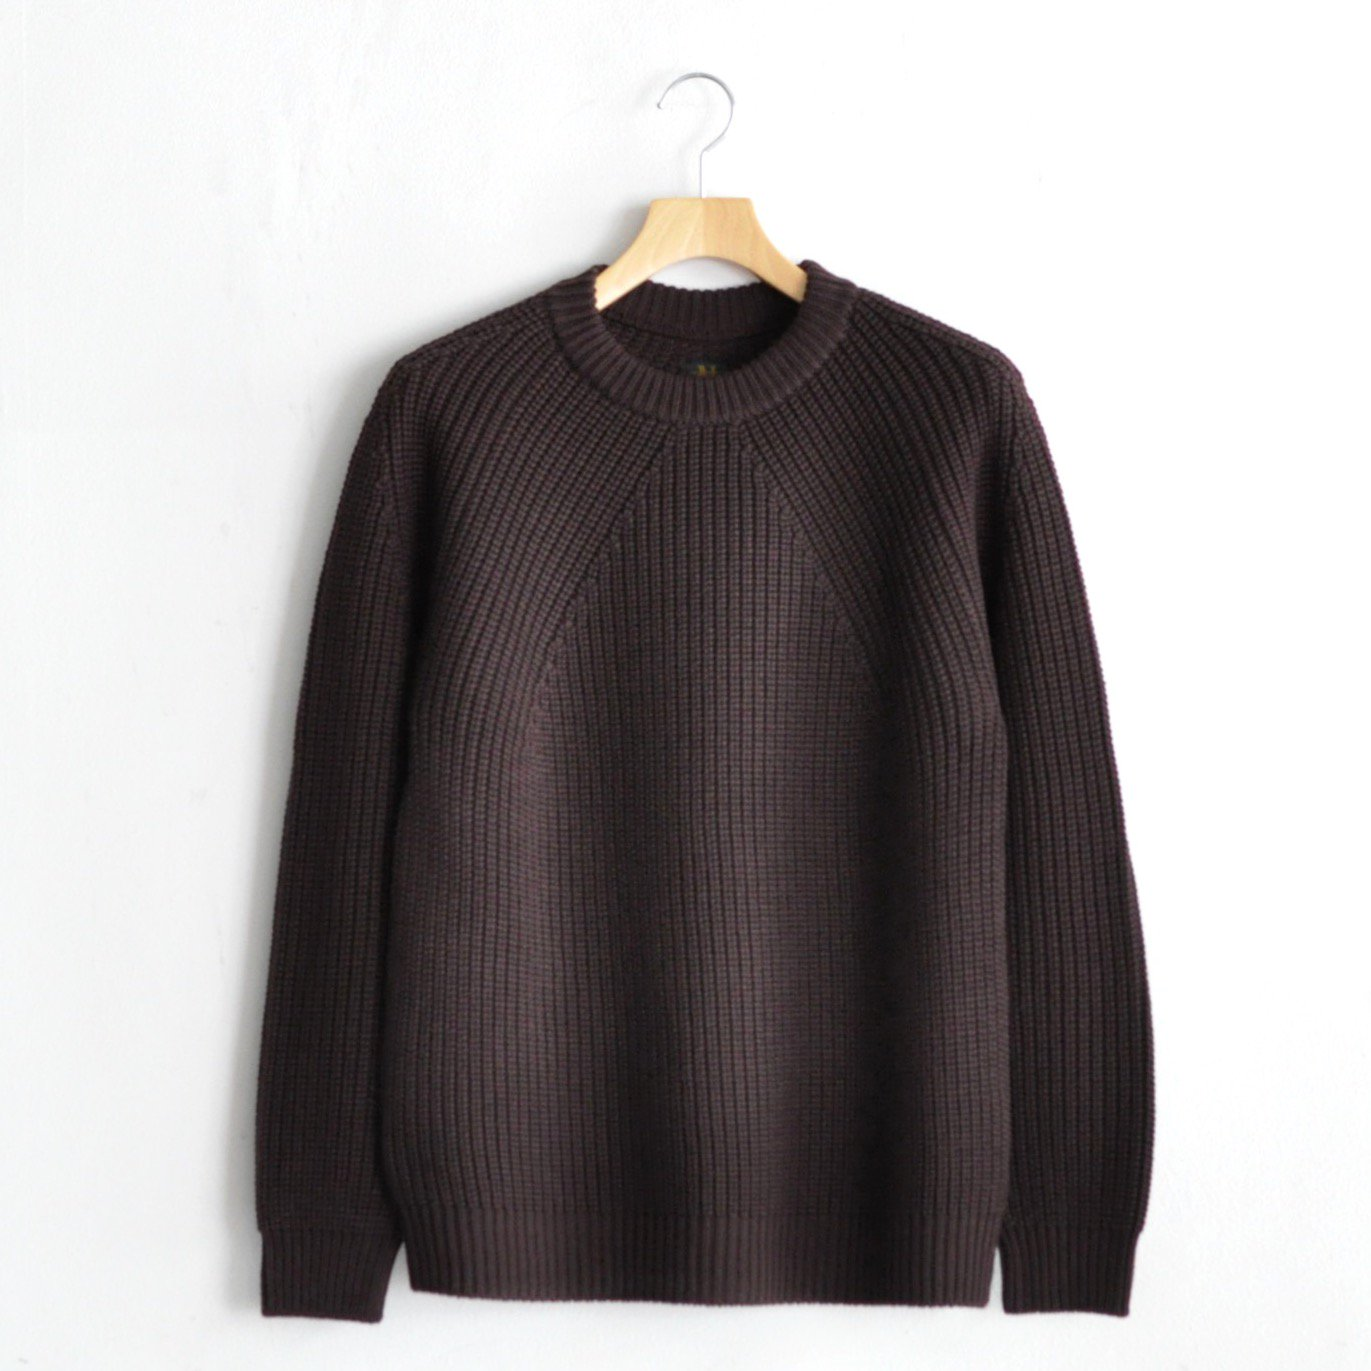 SIGNATURE CREW NECK [BROWN]